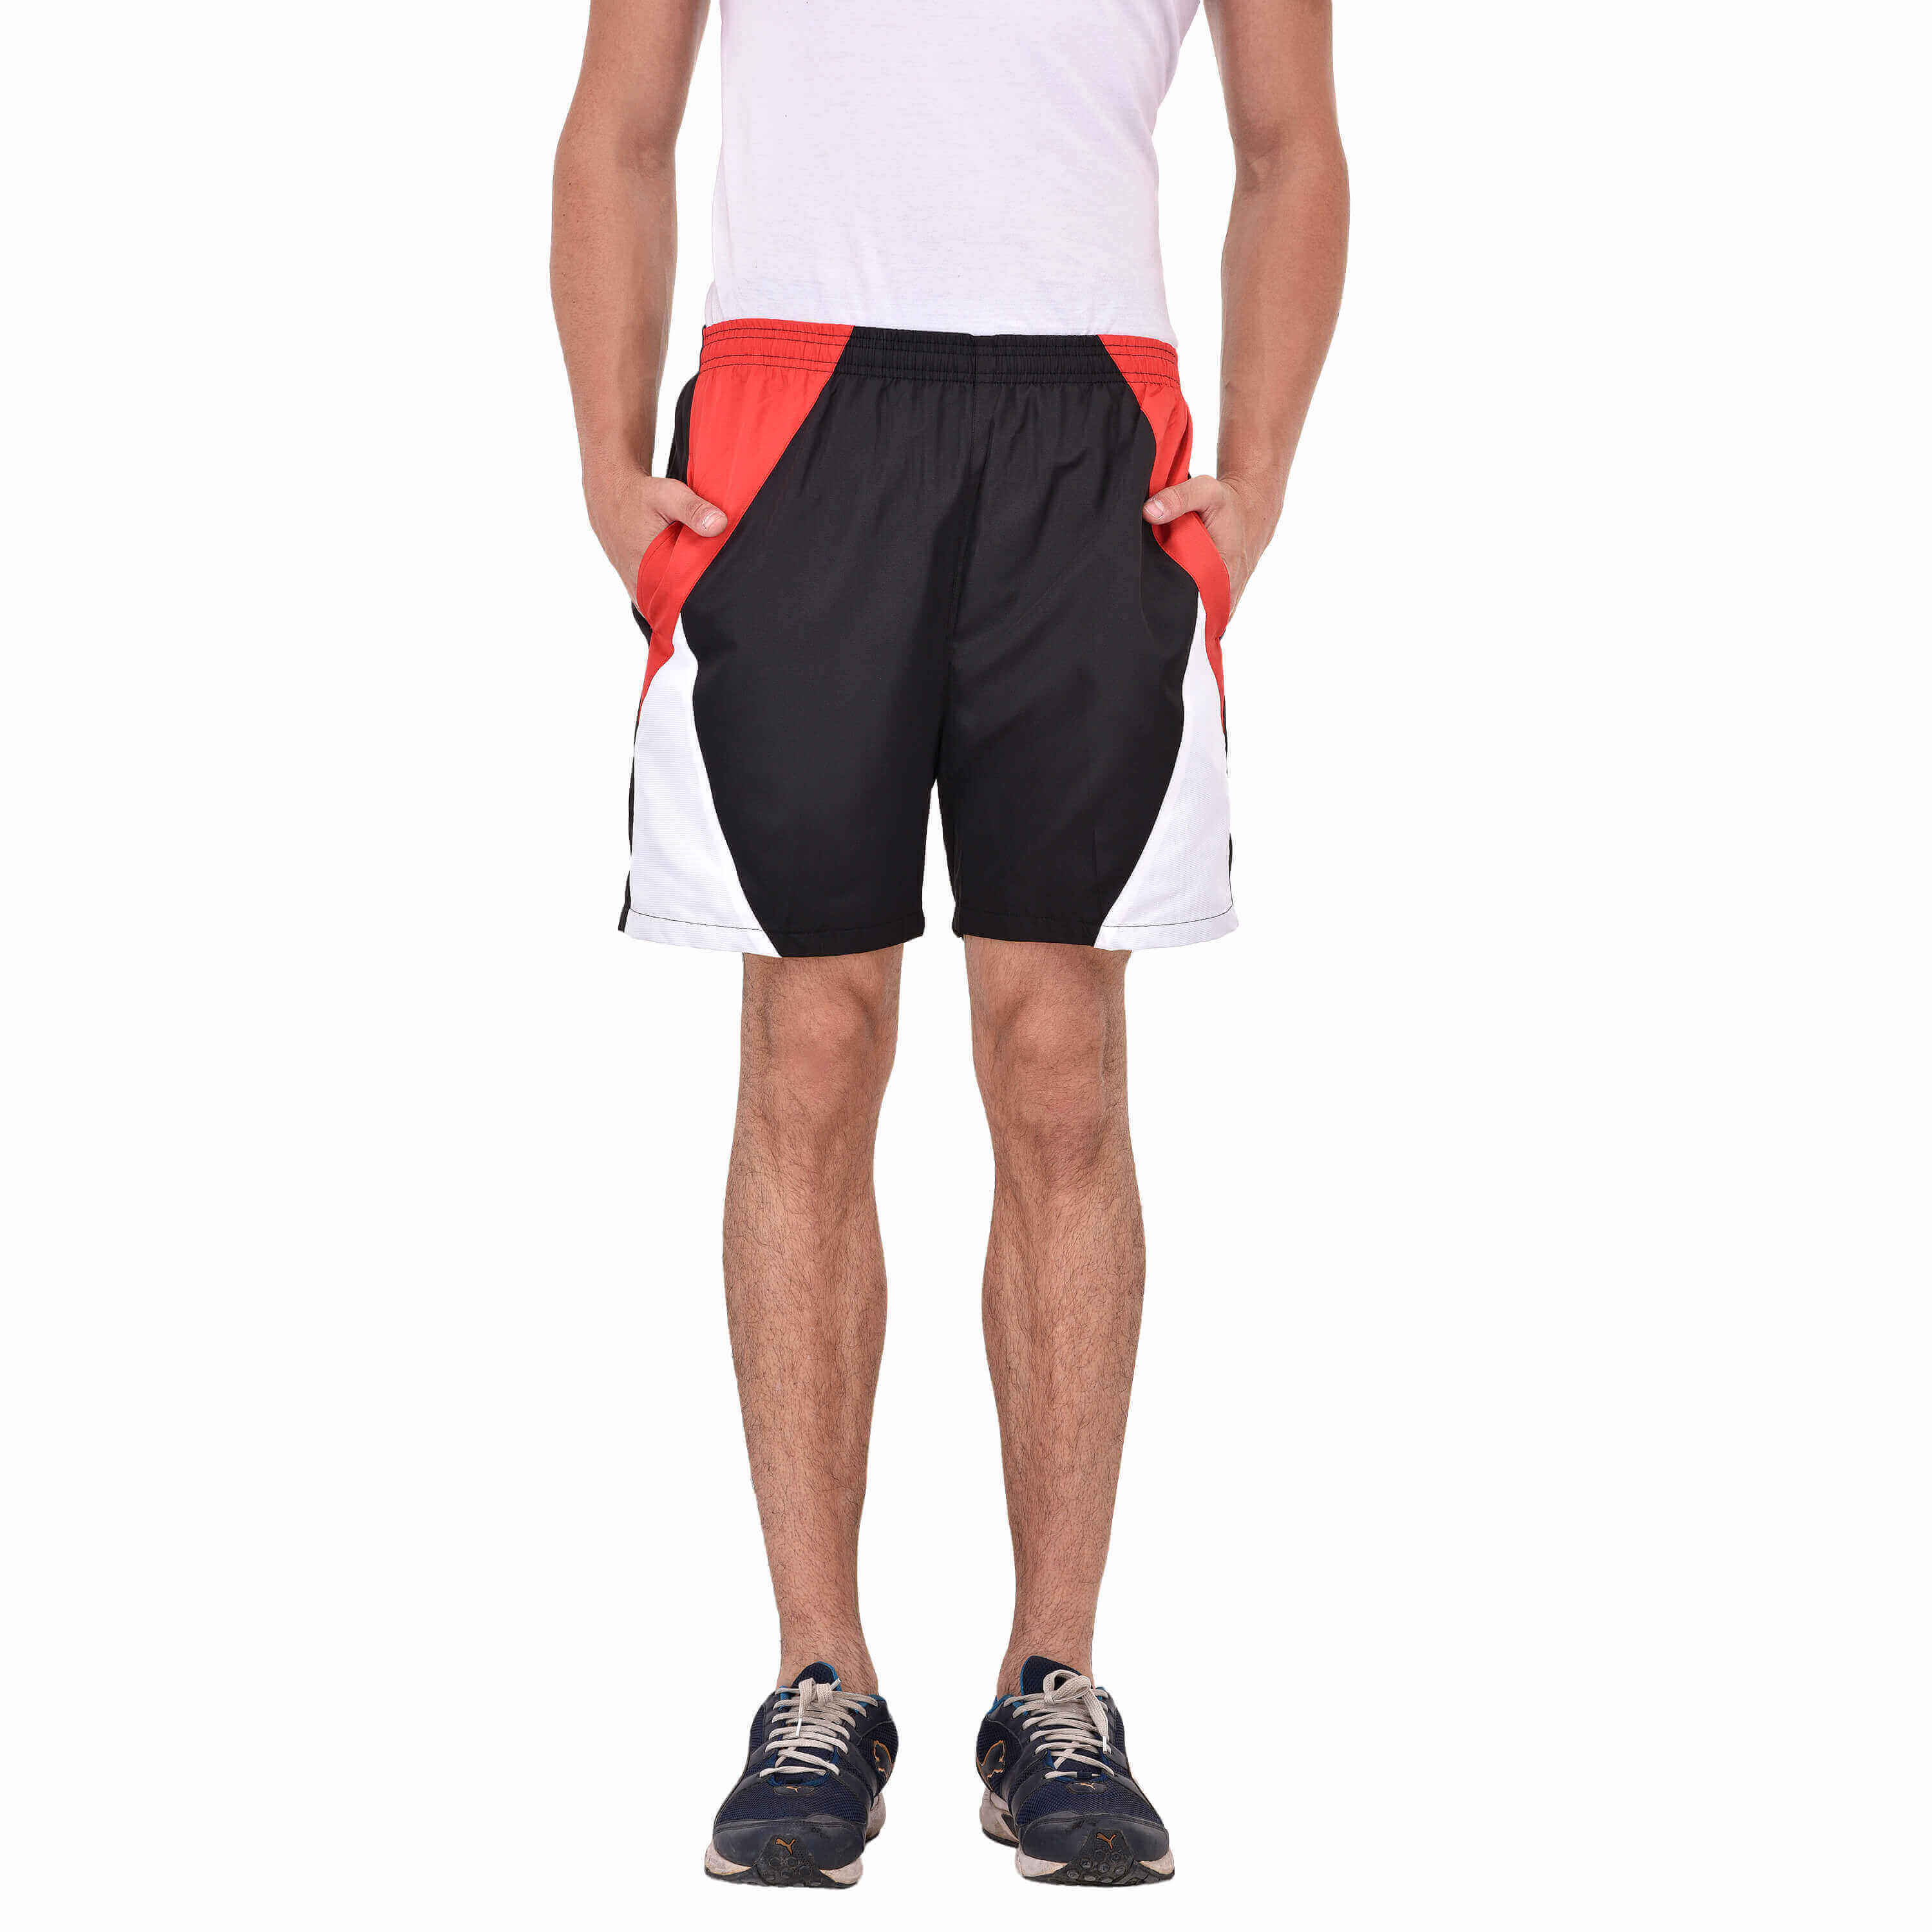 Soccer Shorts Manufacturers in Angola